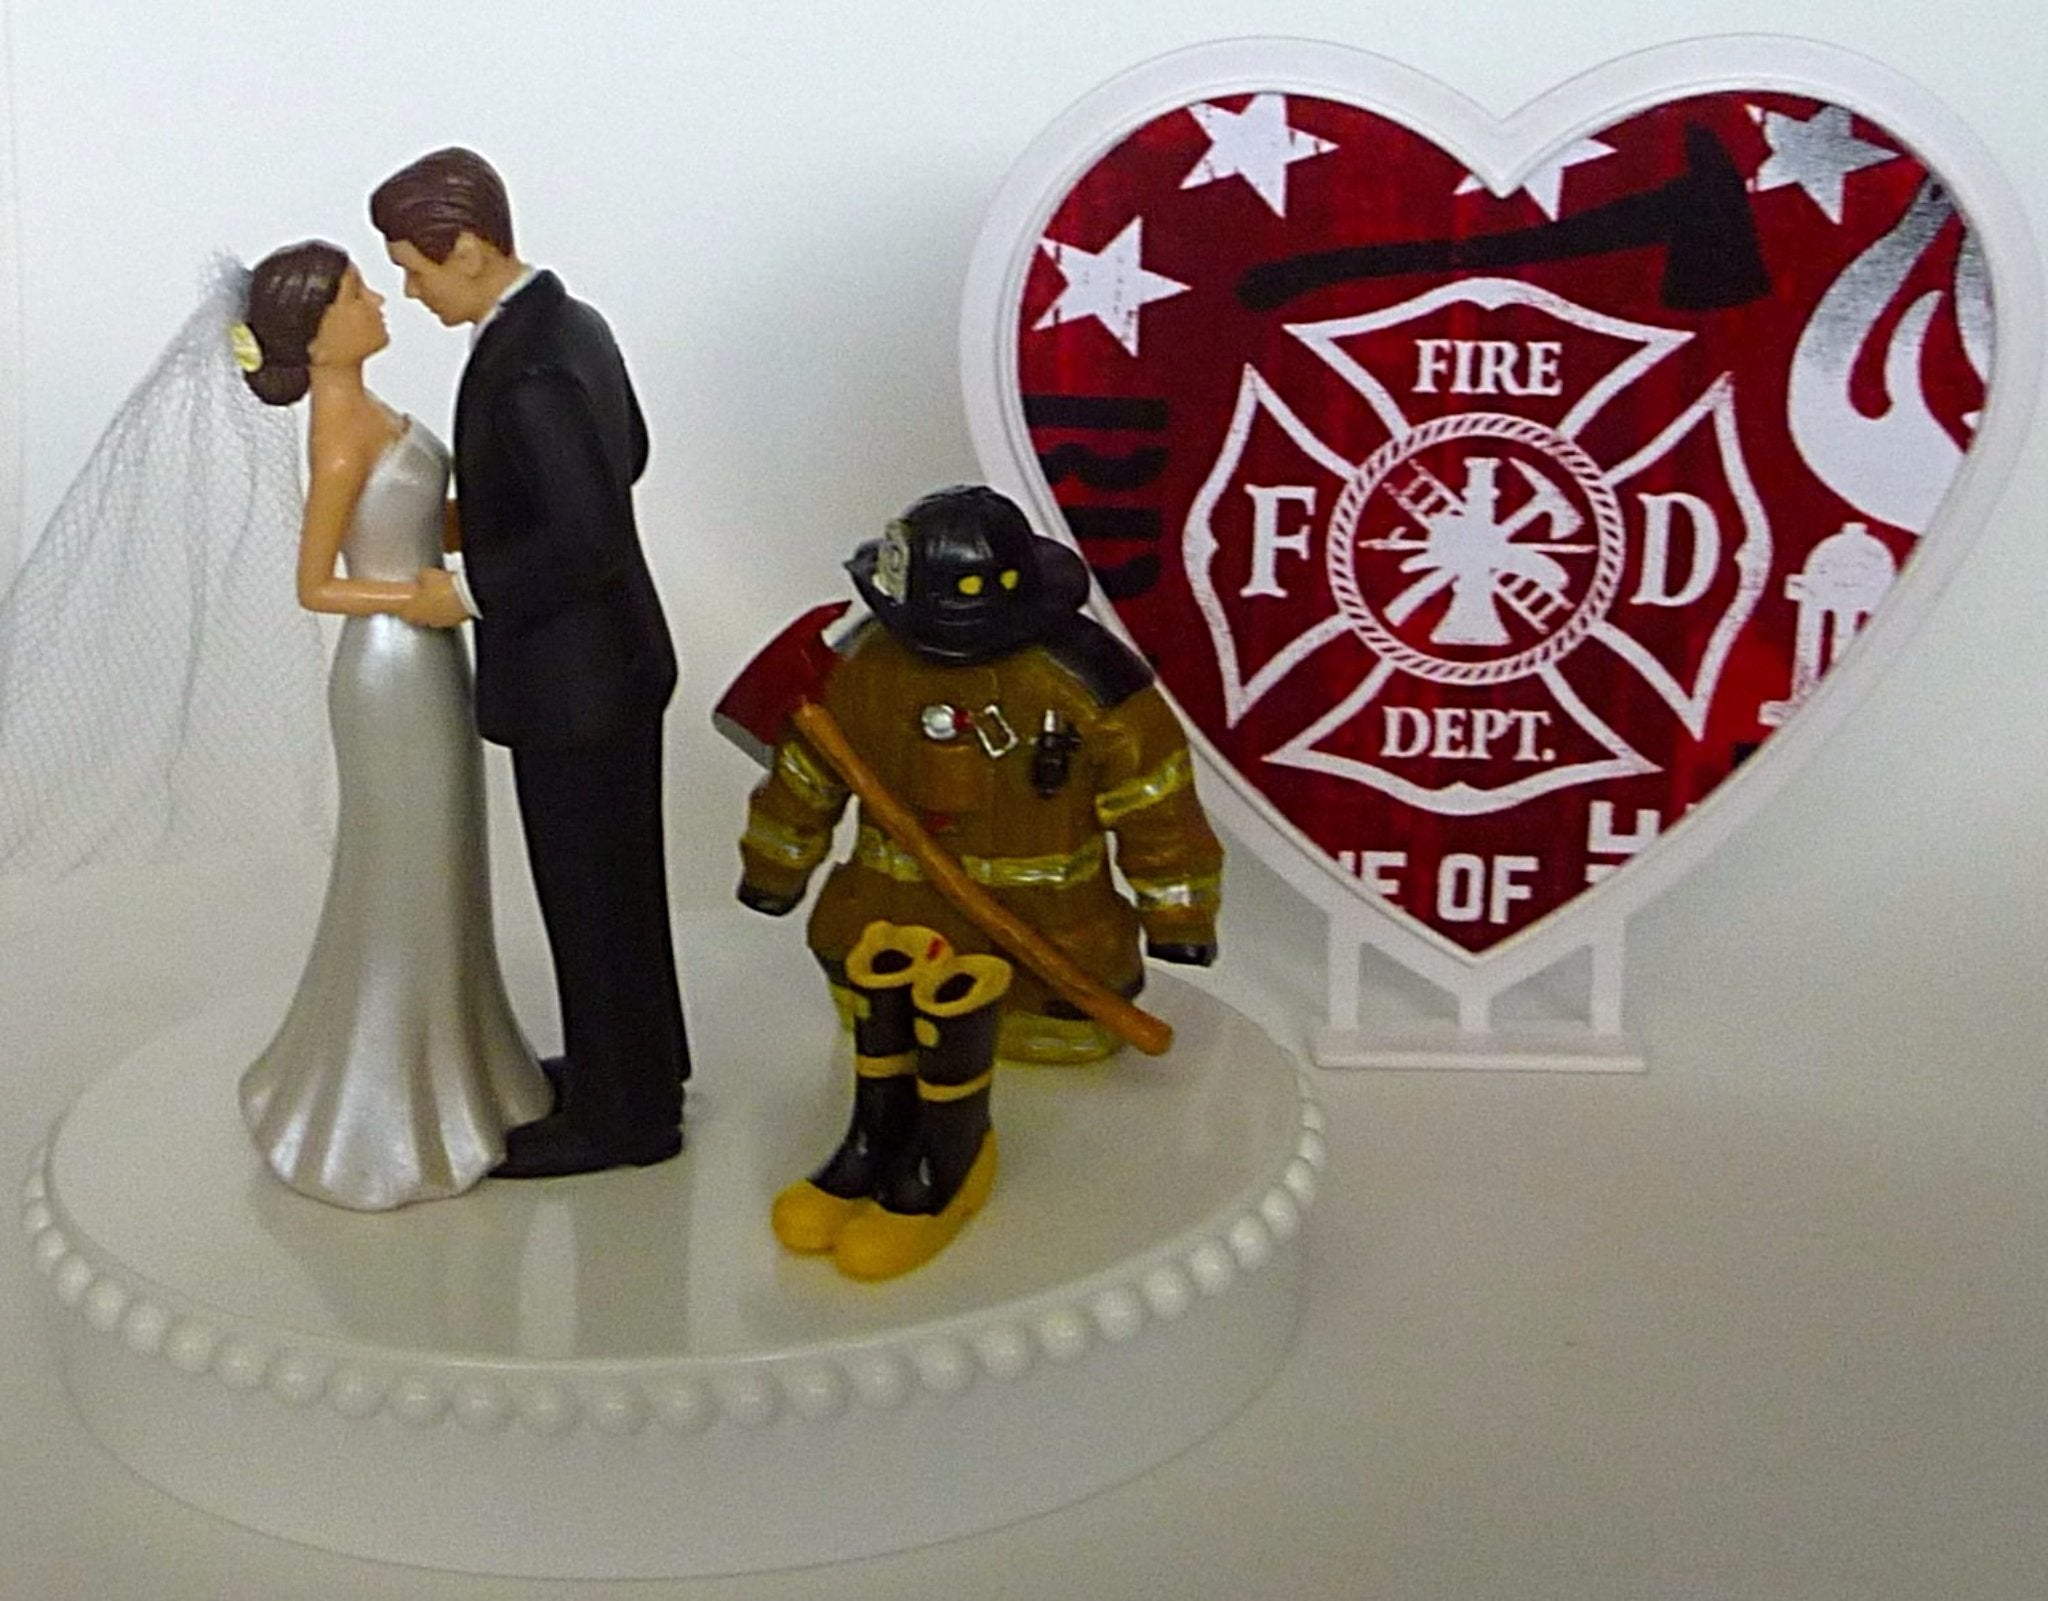 Firefighter themed wedding cake topper FunWeddingThings.com